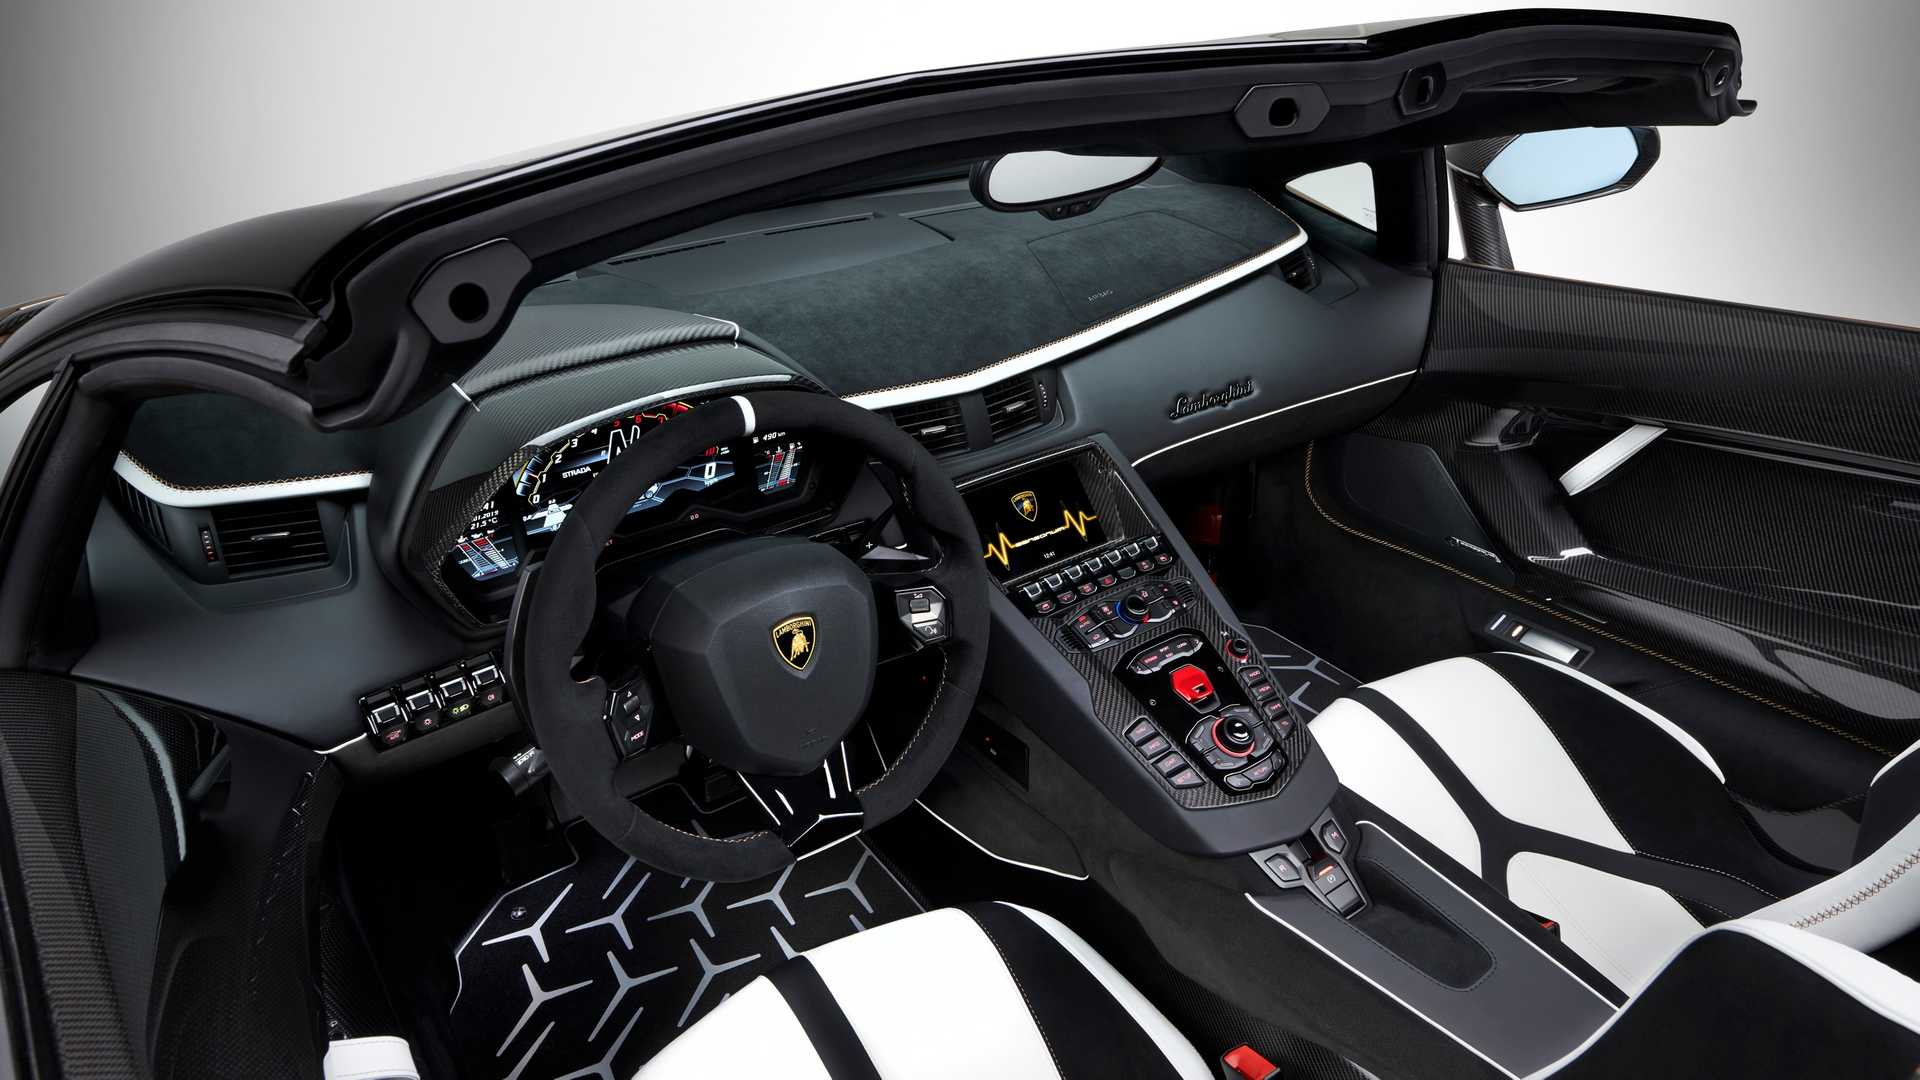 2020 Lamborghini Aventador Svj Roadster Interior Wallpaper 20 Hd